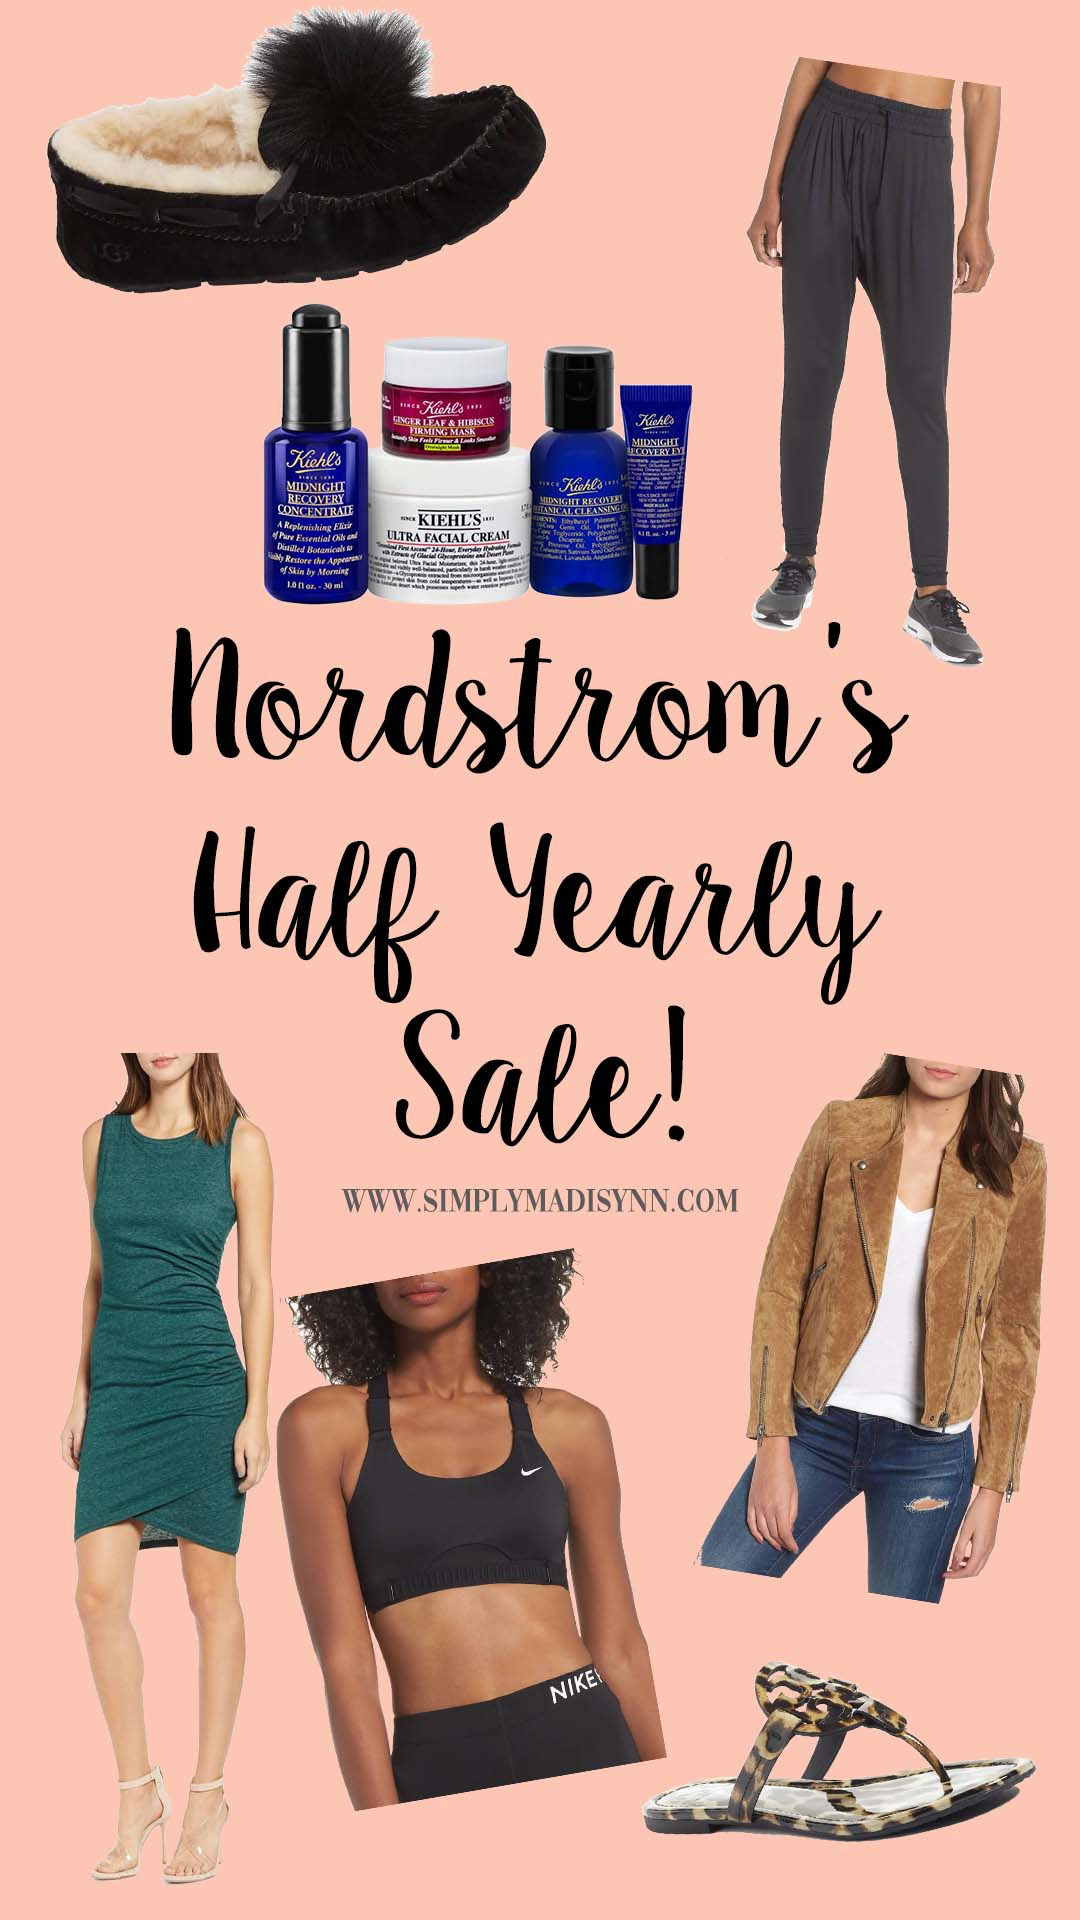 Nordstrom's Half Yearly Sale Finds with Simply Madisynn